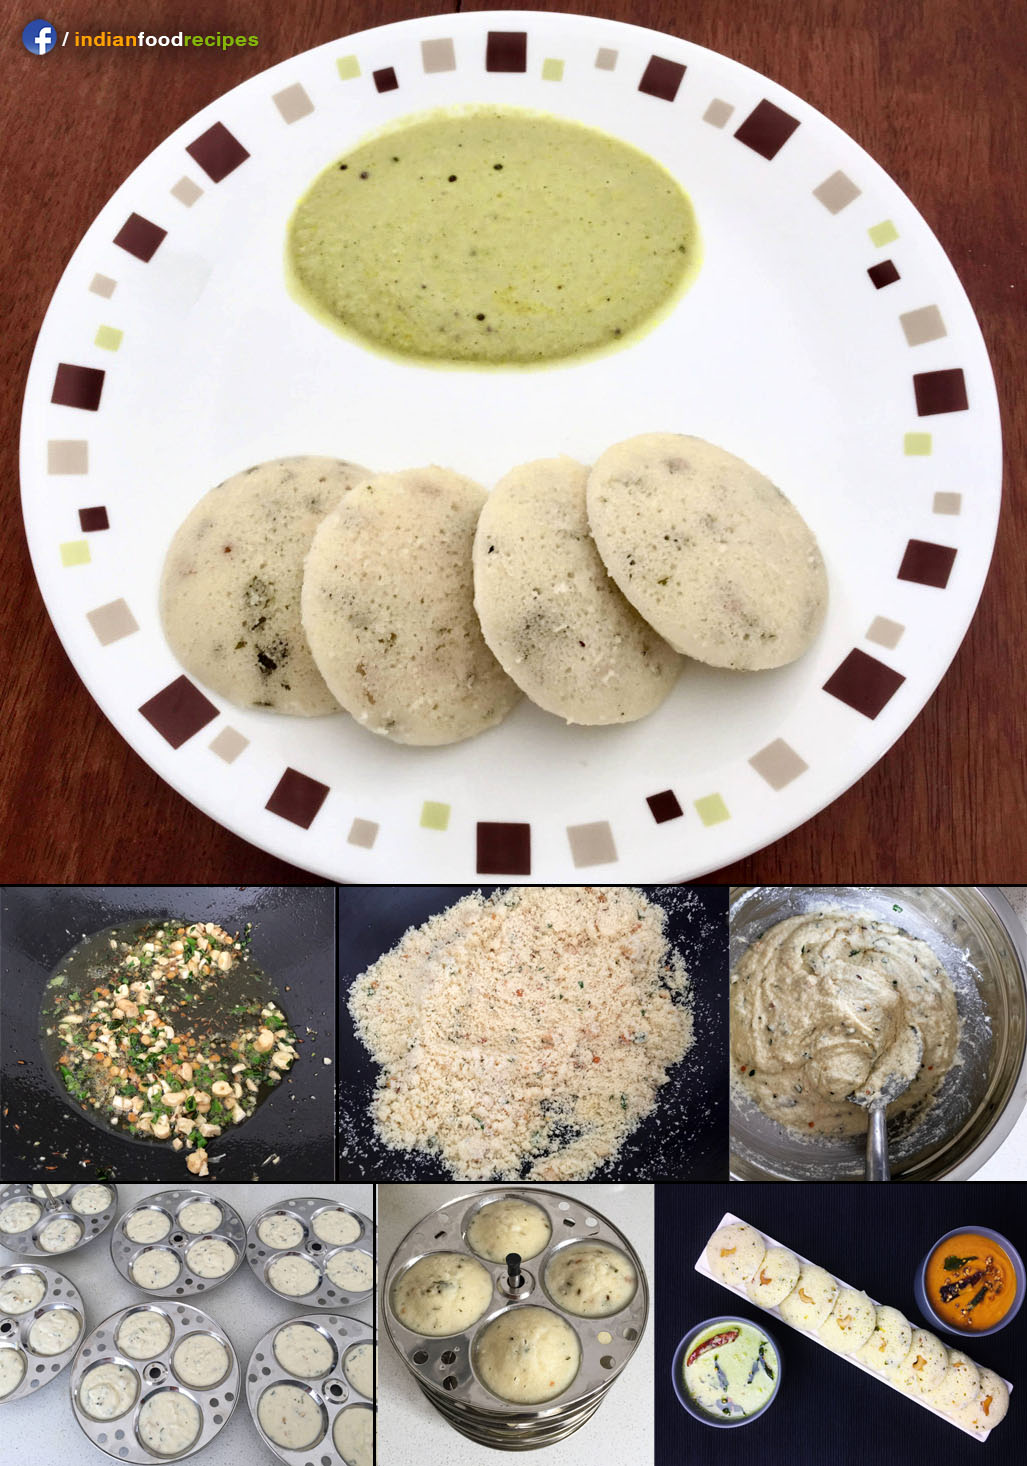 Rava Idli (Semolina Dumplings) recipe step by step